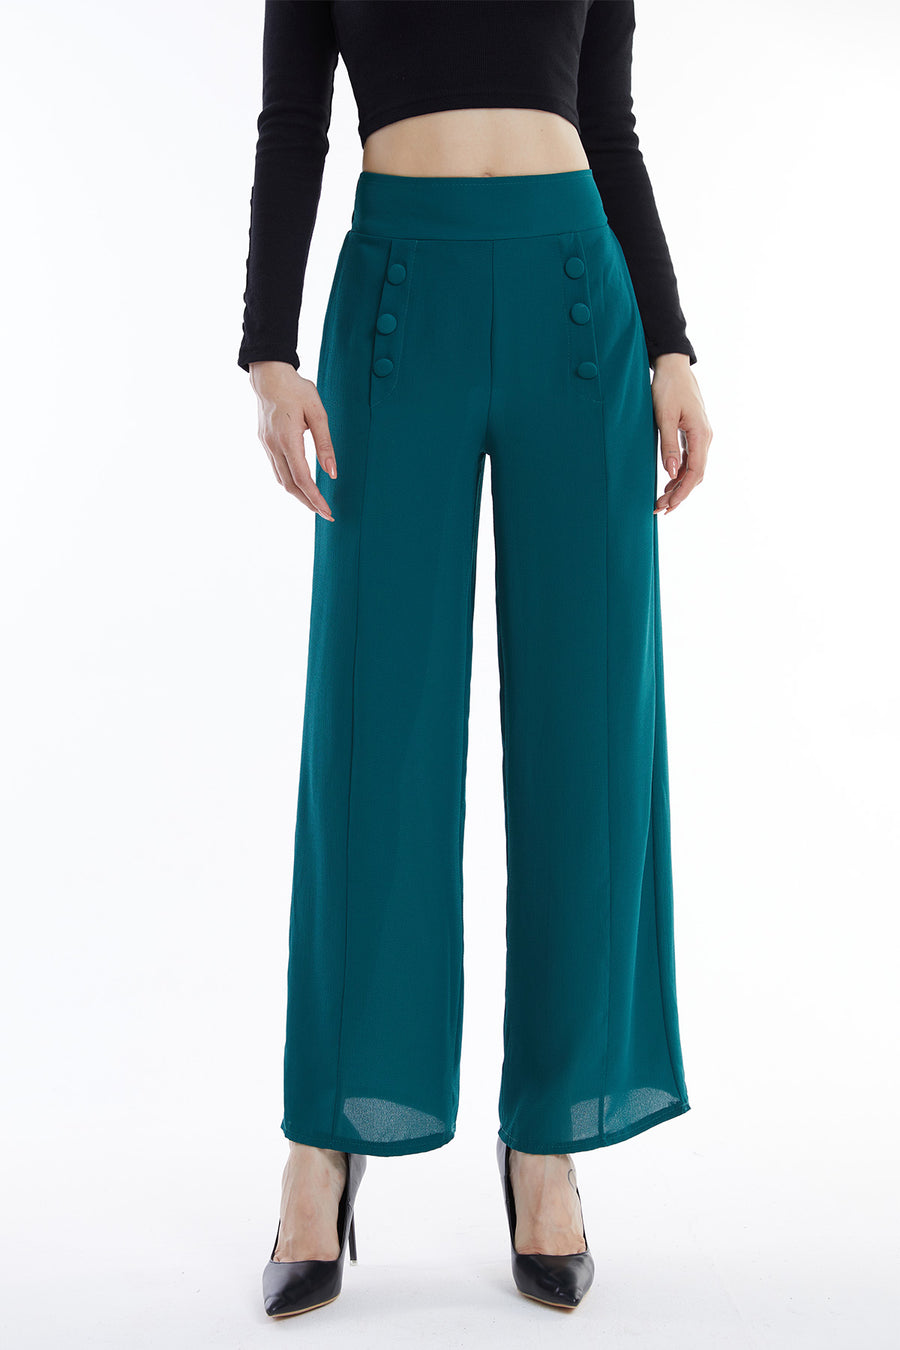 Mantra Pakistan Green Pants with Buttons | Western Wear